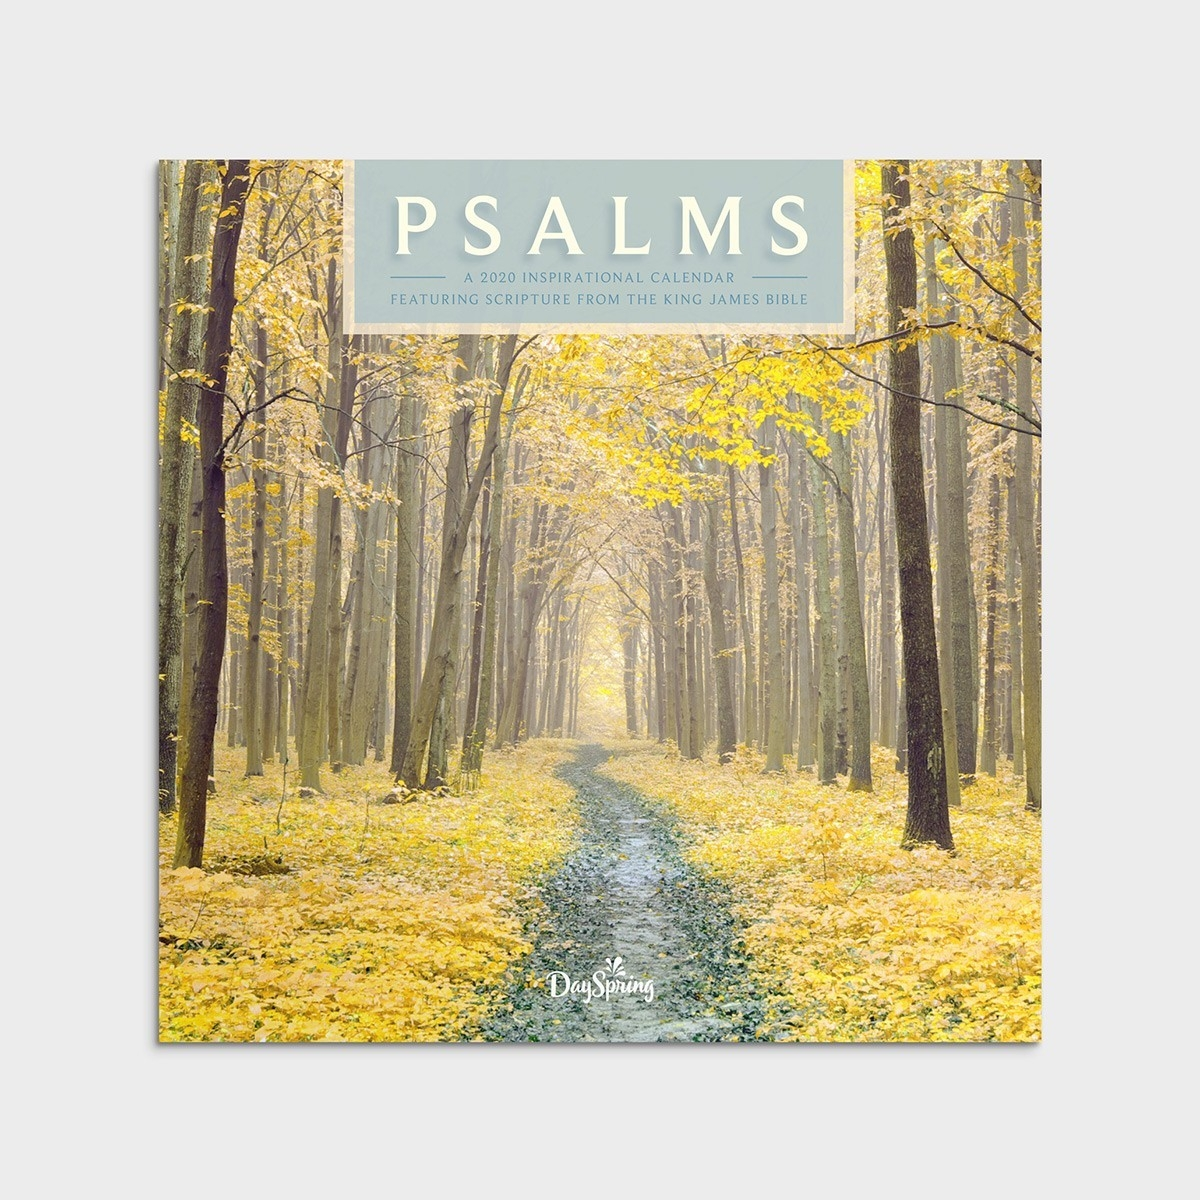 Psalms Trees - 2020 Wall Calendar  2020 Christian Advent Calendar With Scripture